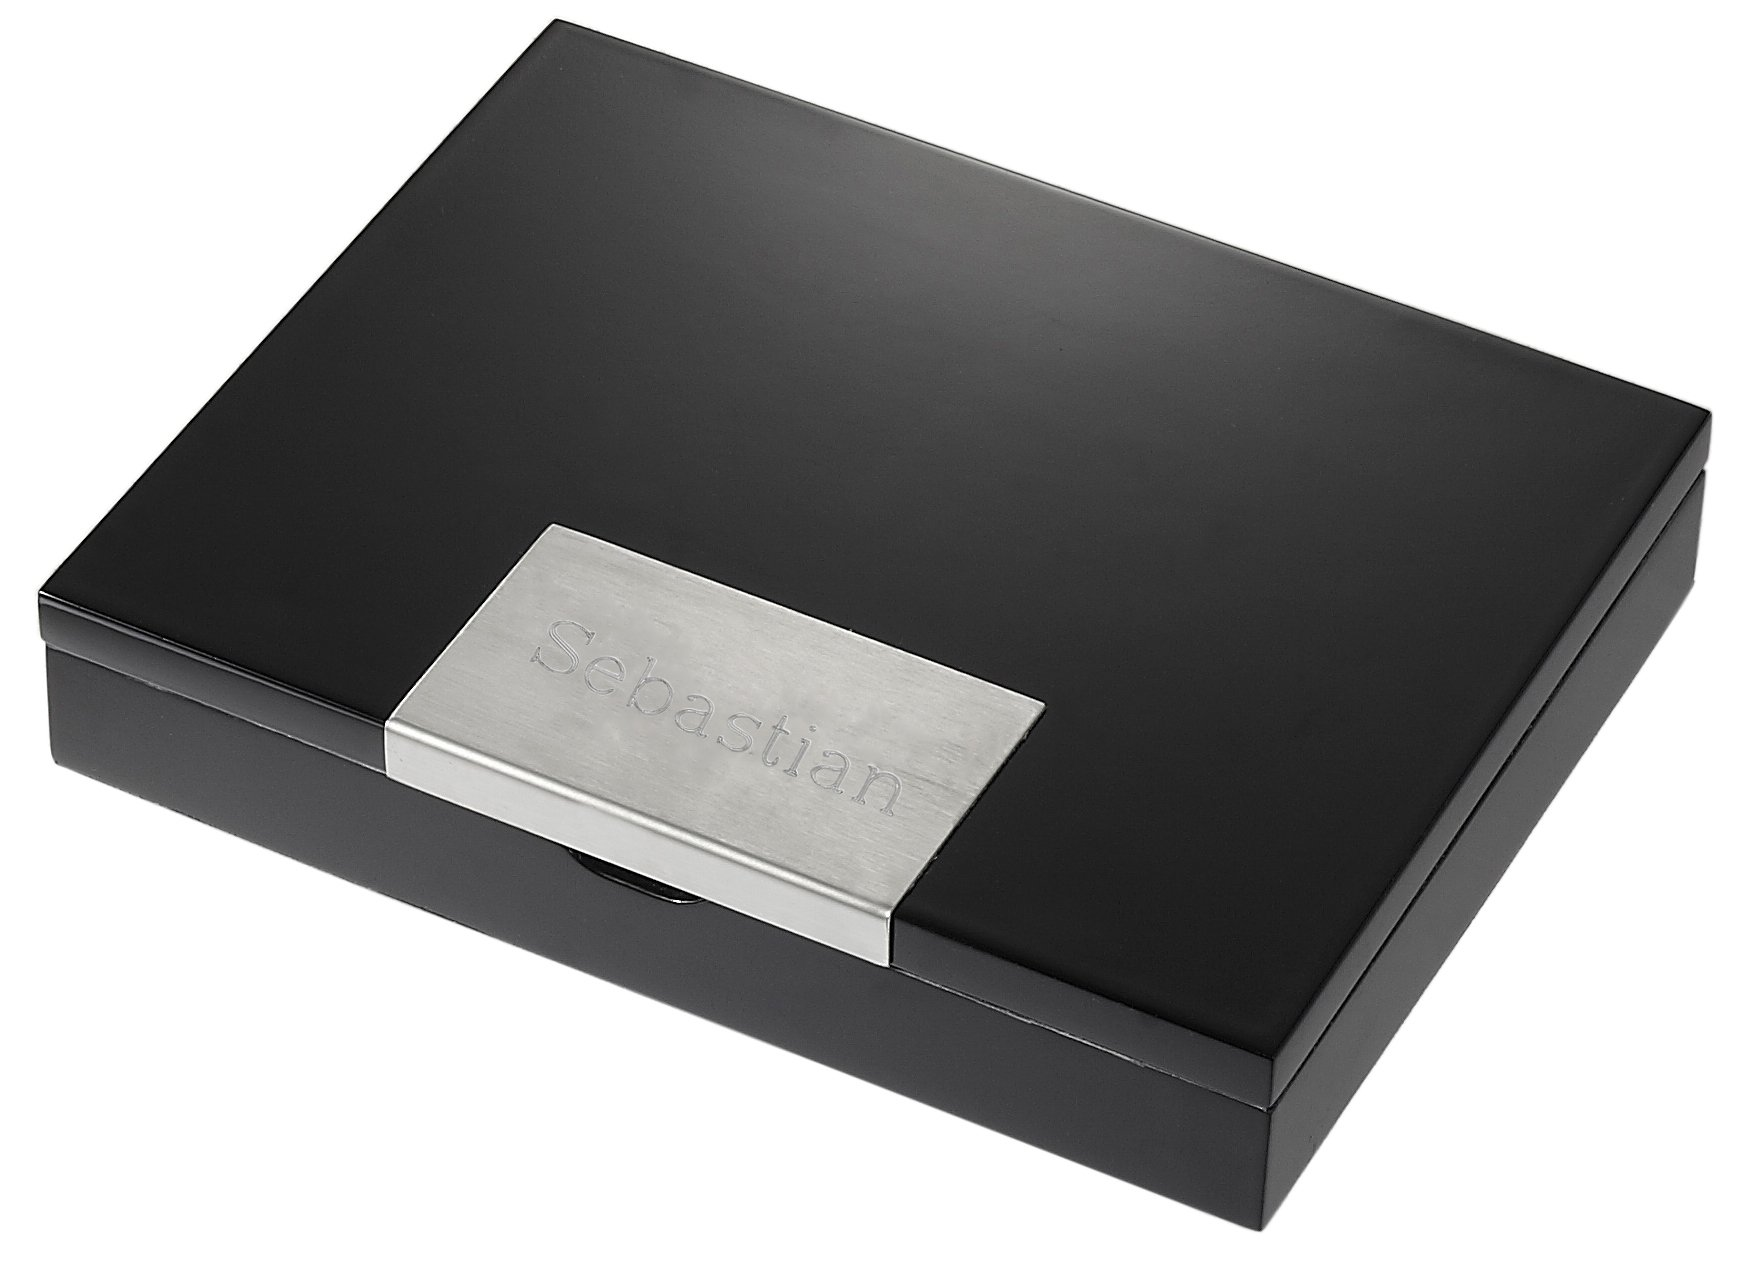 Personalized Visol Glossy Black Wood Travel Cigar Humidor with Free Engraving by Visol (Image #1)